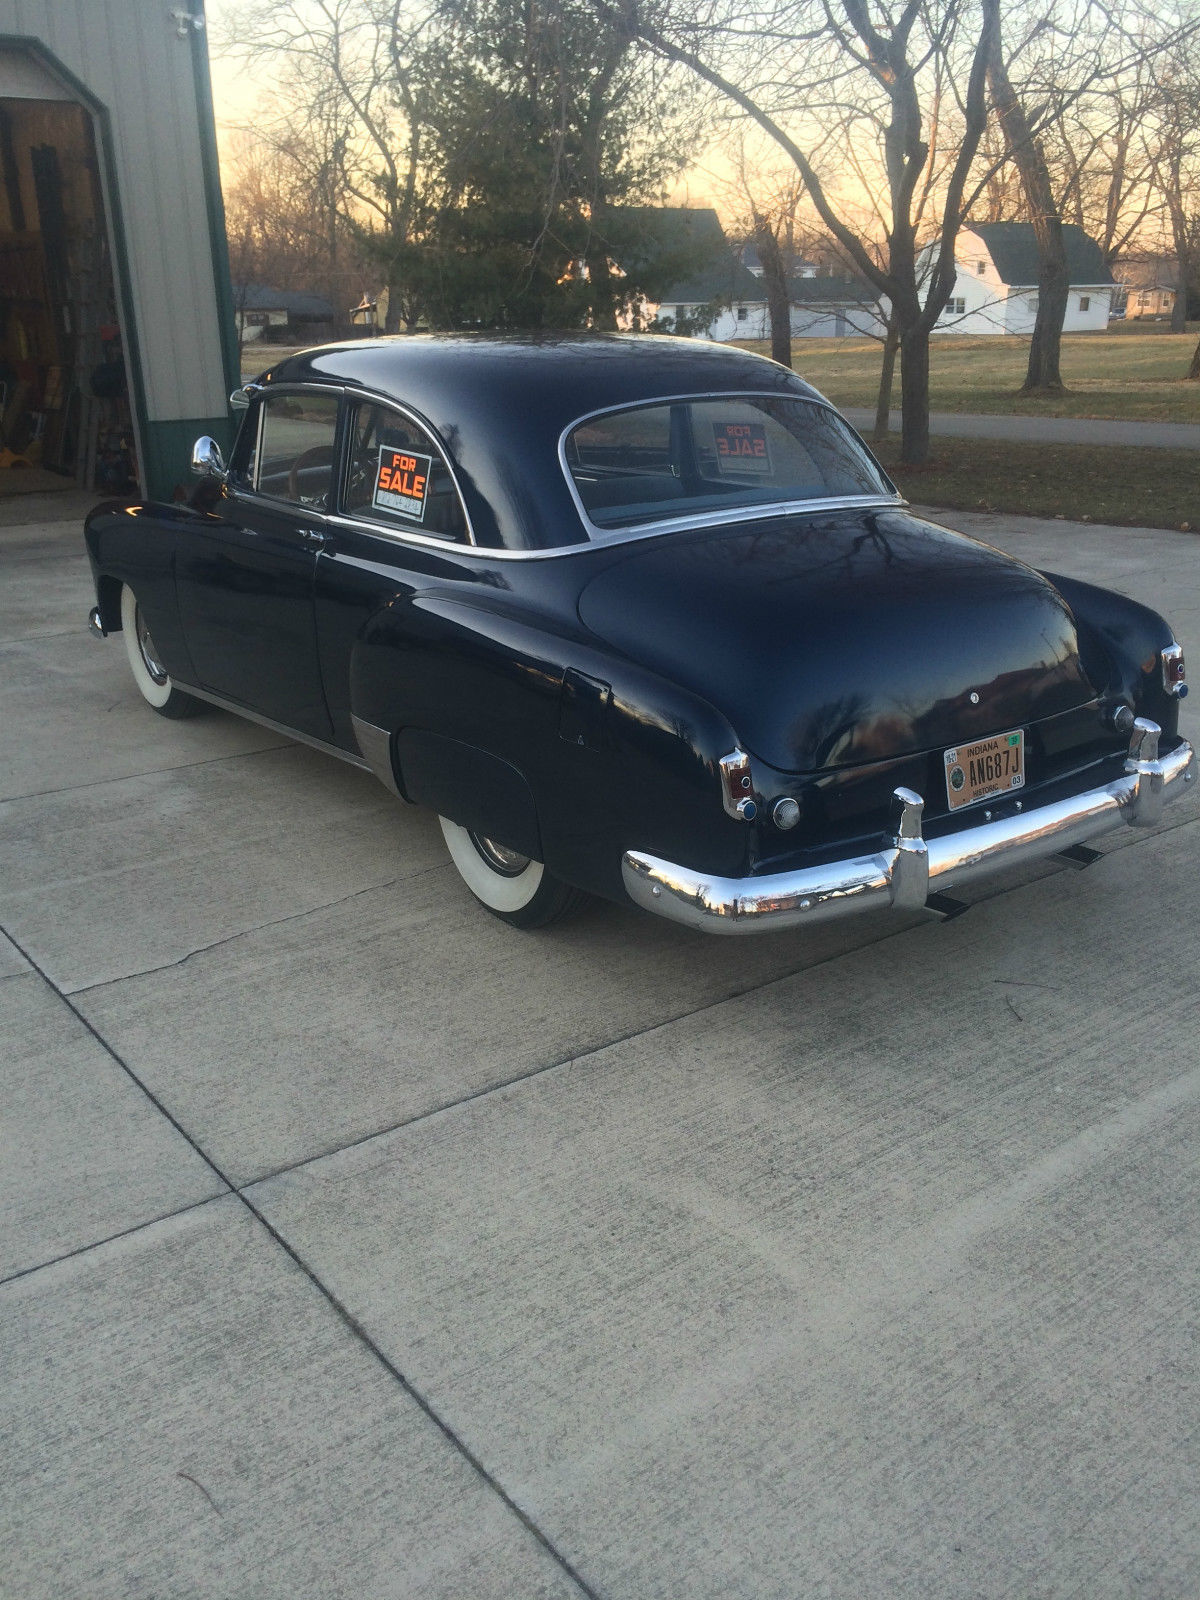 Dodge Coro moreover  furthermore Chevy Business Coupe also S L in addition Chevrolet Styleline Deluxe Door Sedan. on 1952 chevrolet 4 door sedan